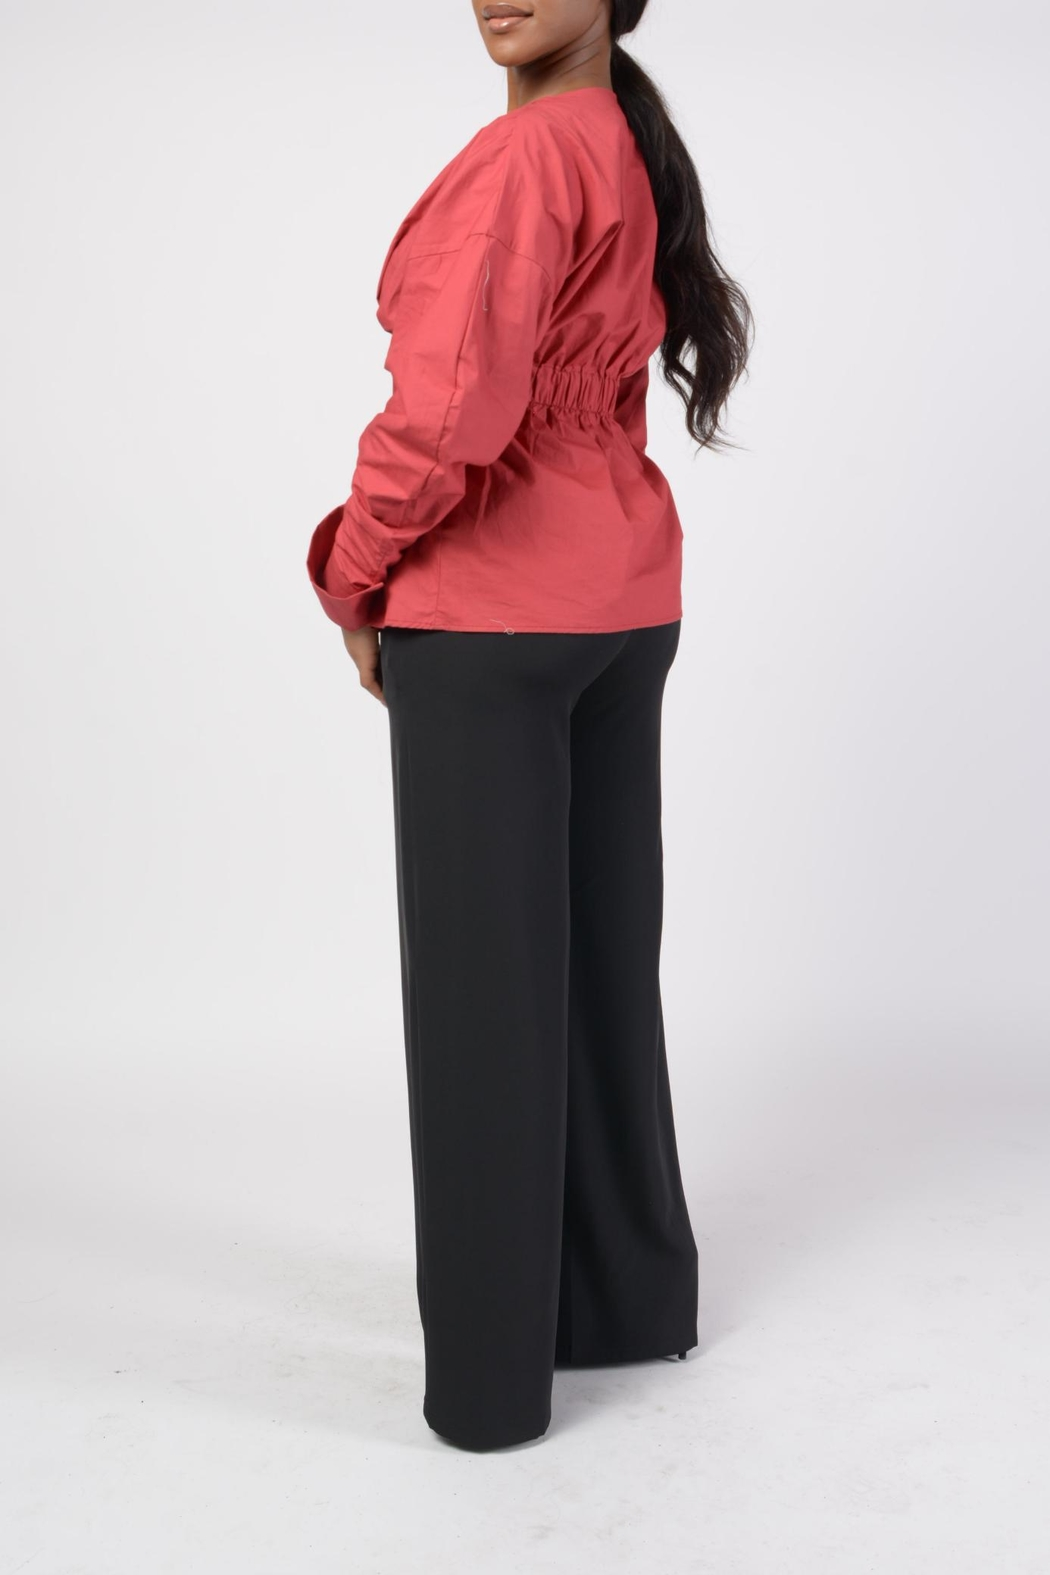 MODChic Couture Hayden Peplum Top - Back Cropped Image